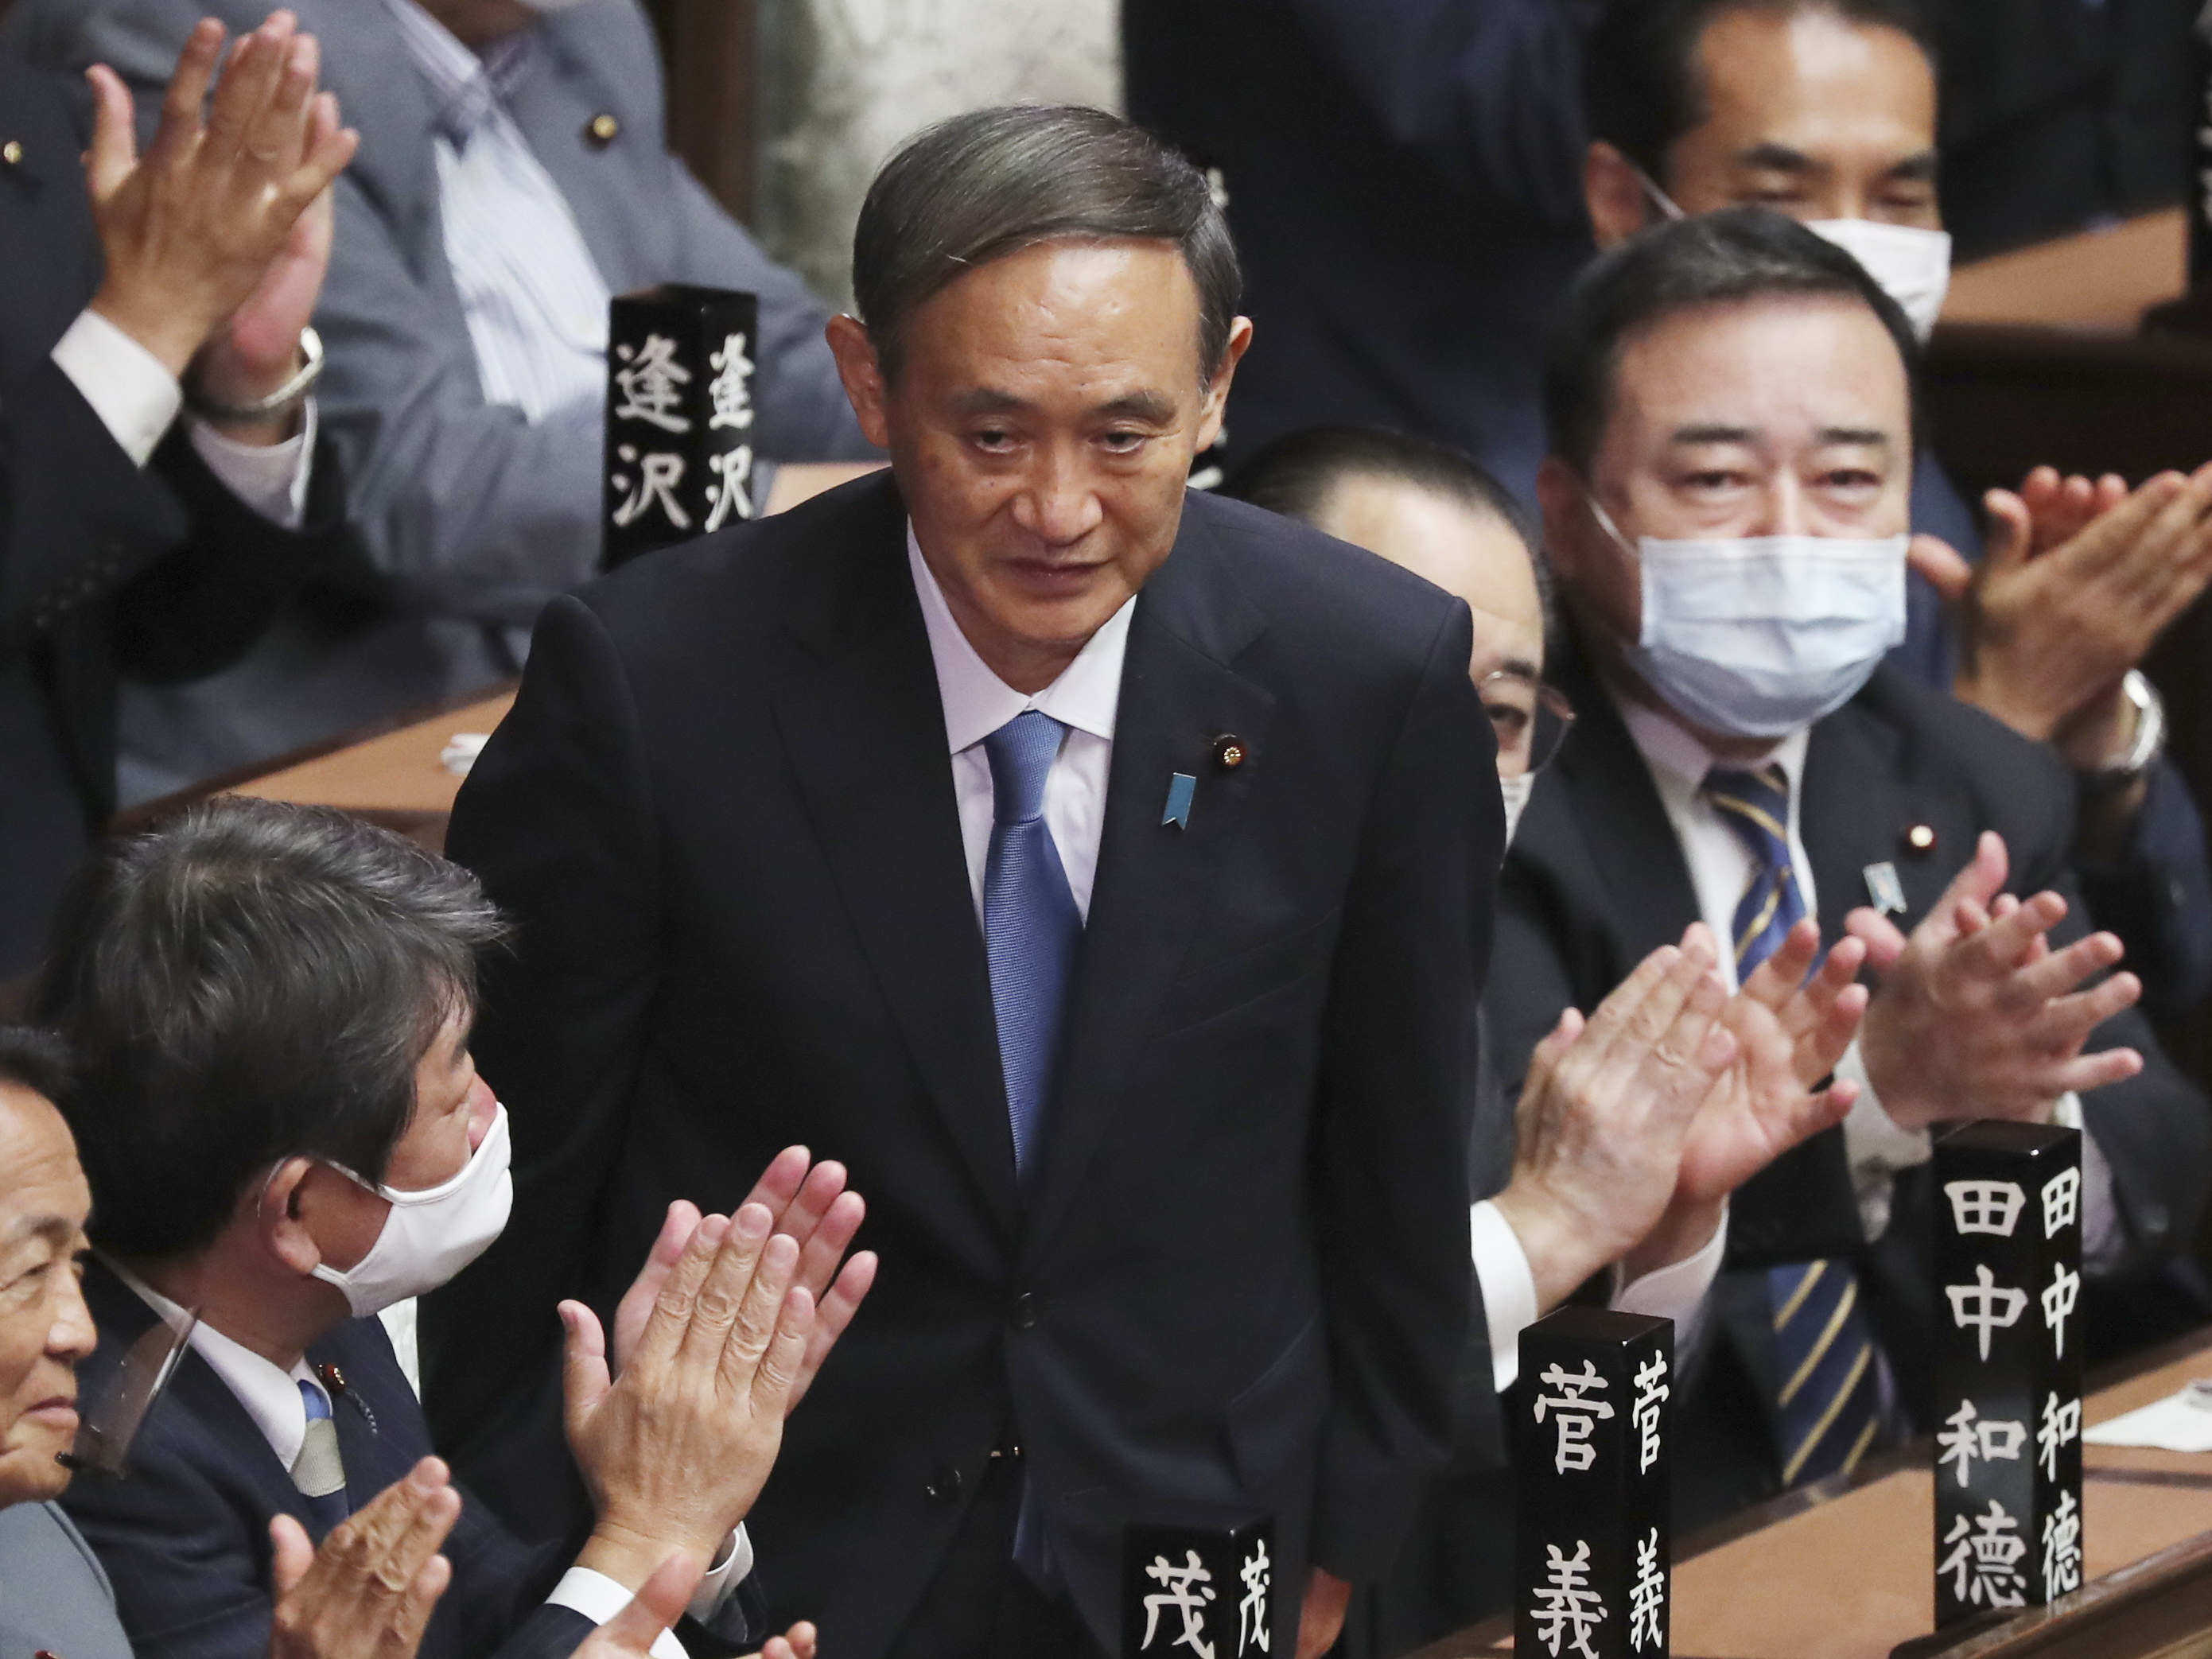 Yoshihide Suga sworn in as Japan